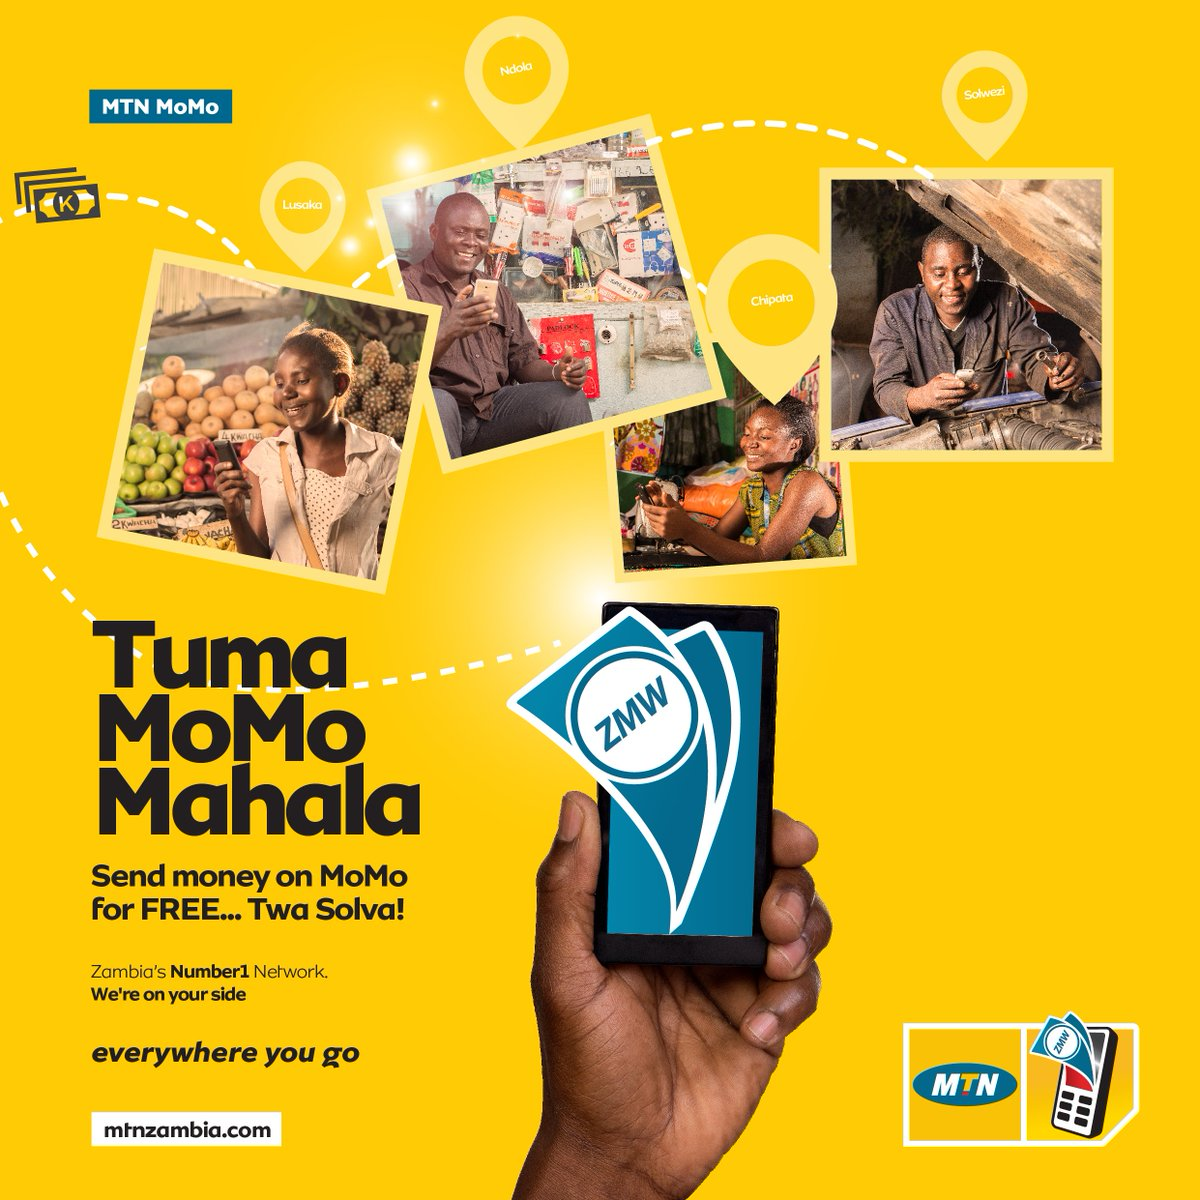 How To Reset Your Forgotten MTN Mobile Money Pin Zambia